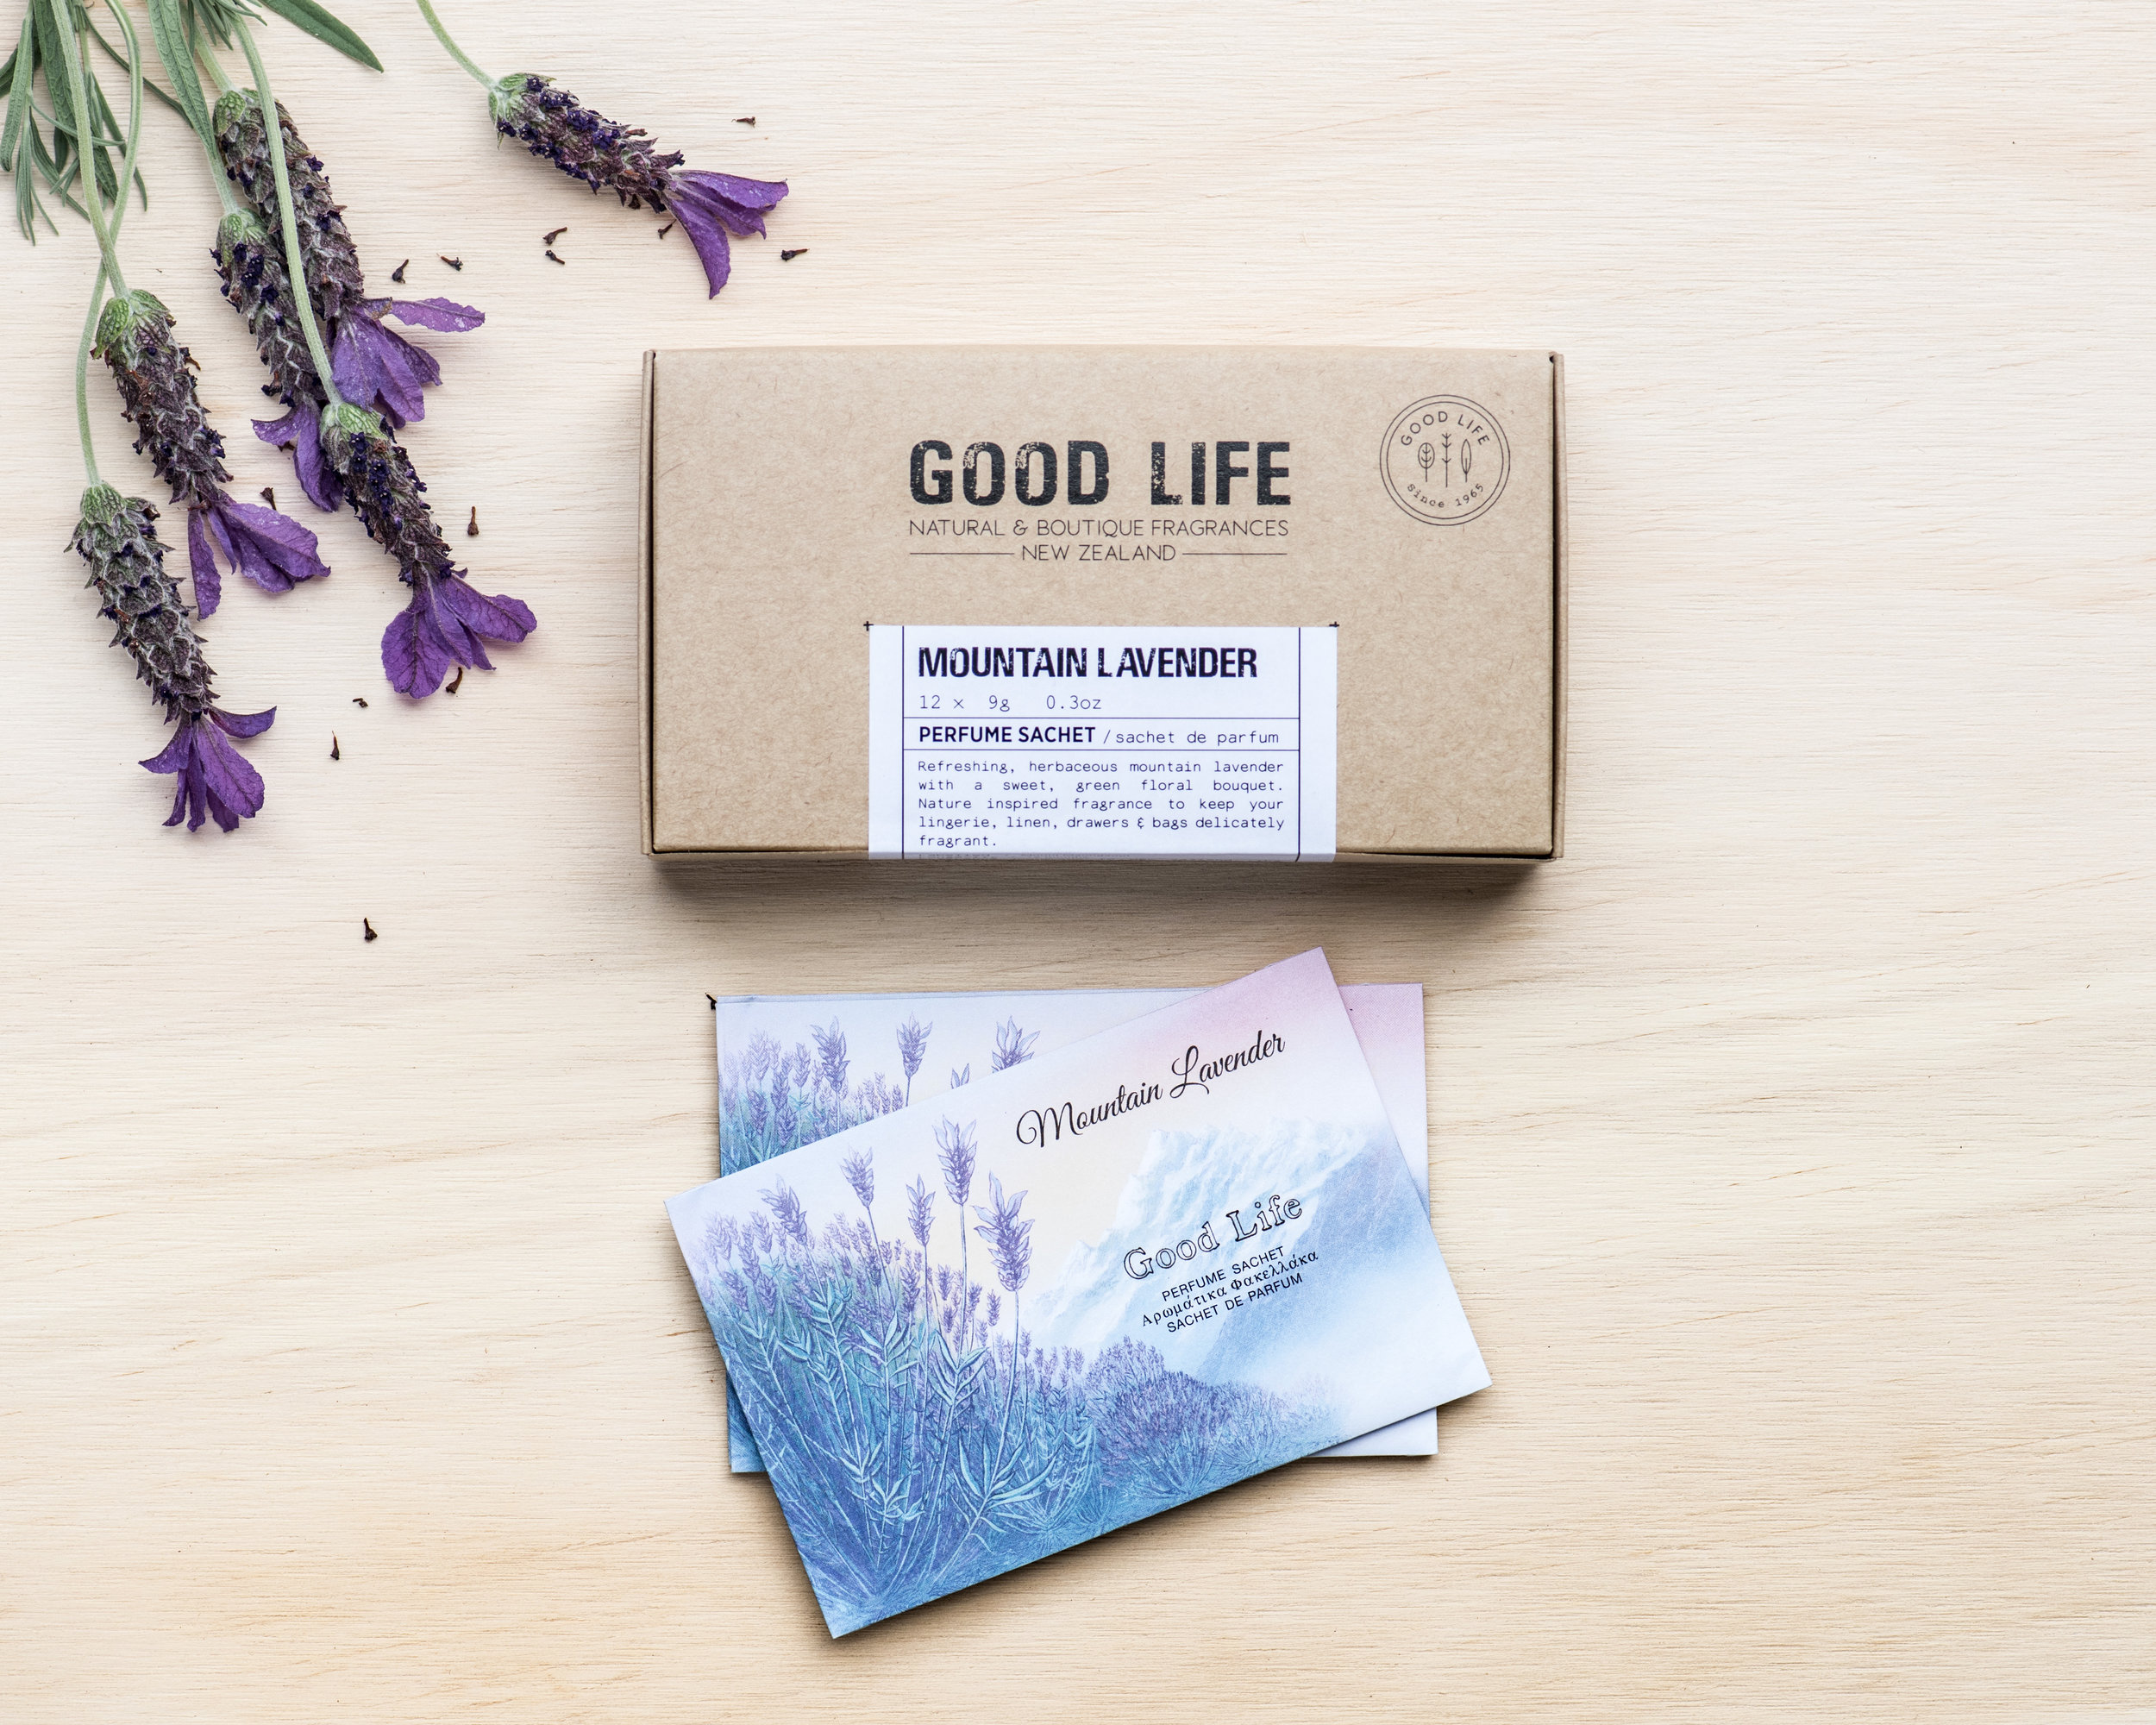 Lavender - Refreshing, herbaceous mountain lavender with a sweet, green floral bouquet.Nature inspired fragrance to keep your lingerie, linen, drawers & bags delicately fragrant.